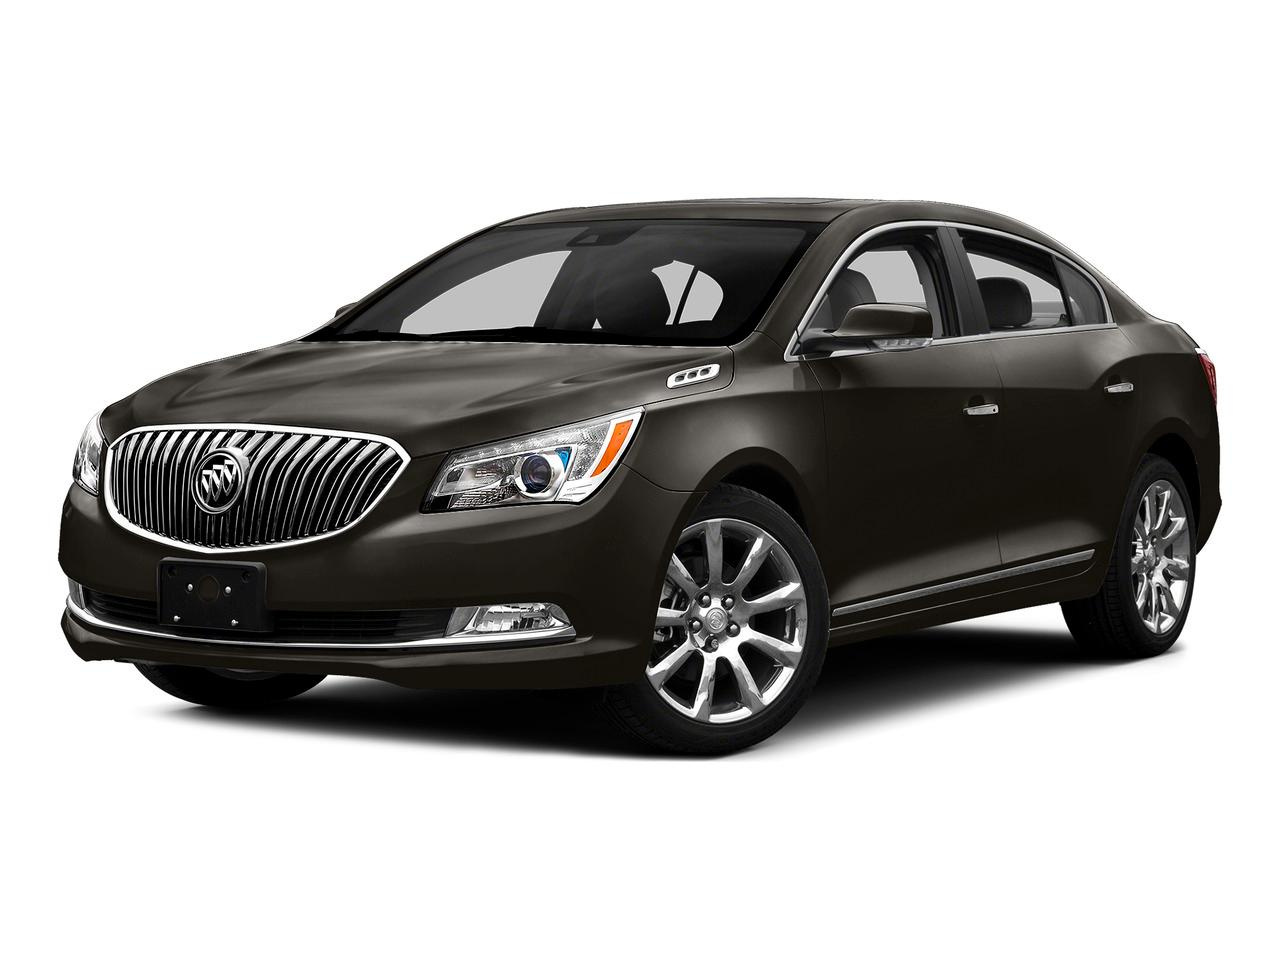 2016 Buick LaCrosse Vehicle Photo in WEST CHESTER, PA 19382-4976